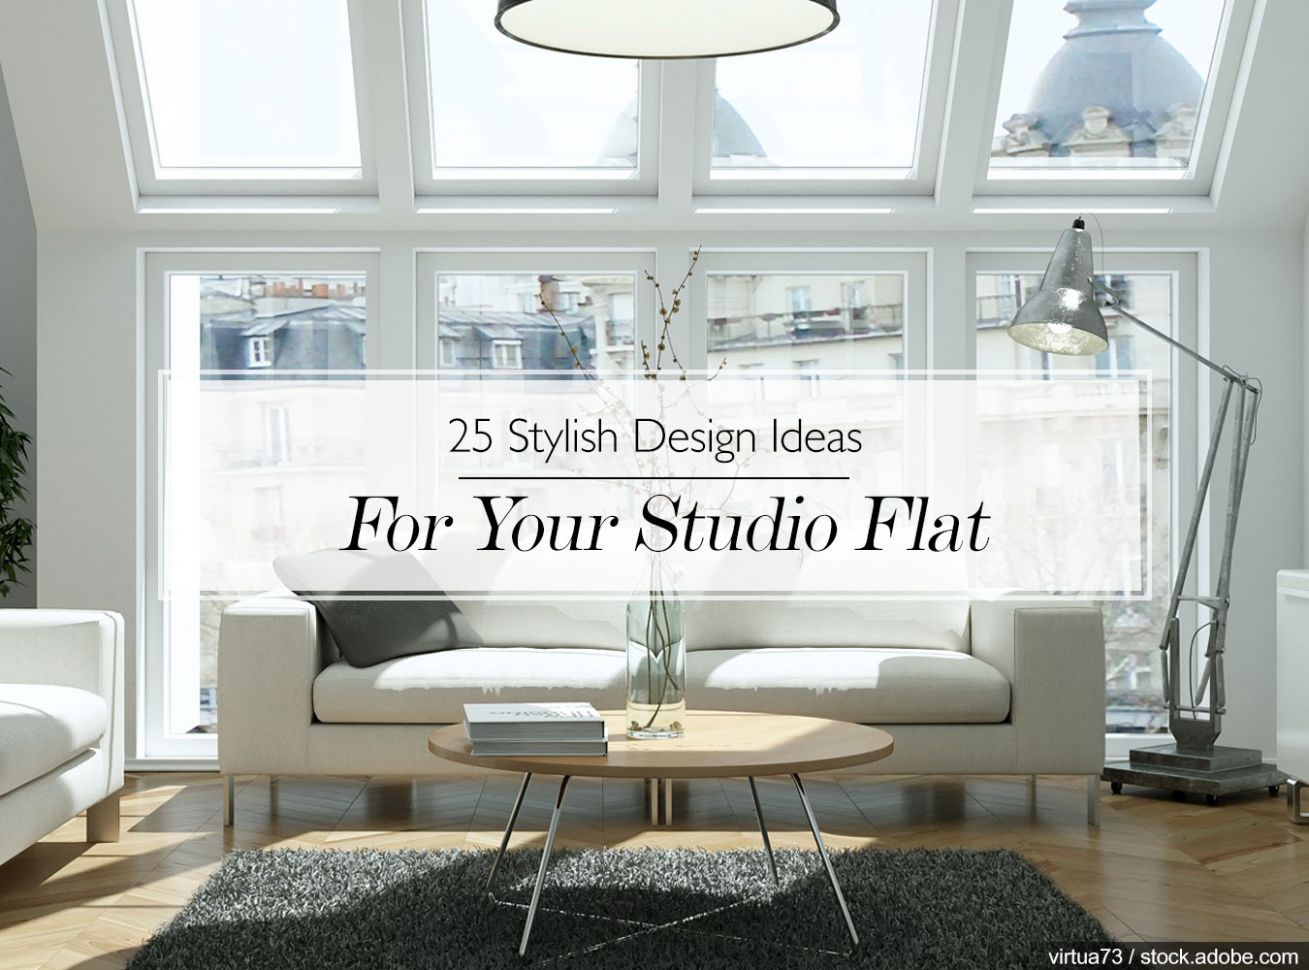 9 Stylish Design Ideas For Your Studio Flat | The LuxPad